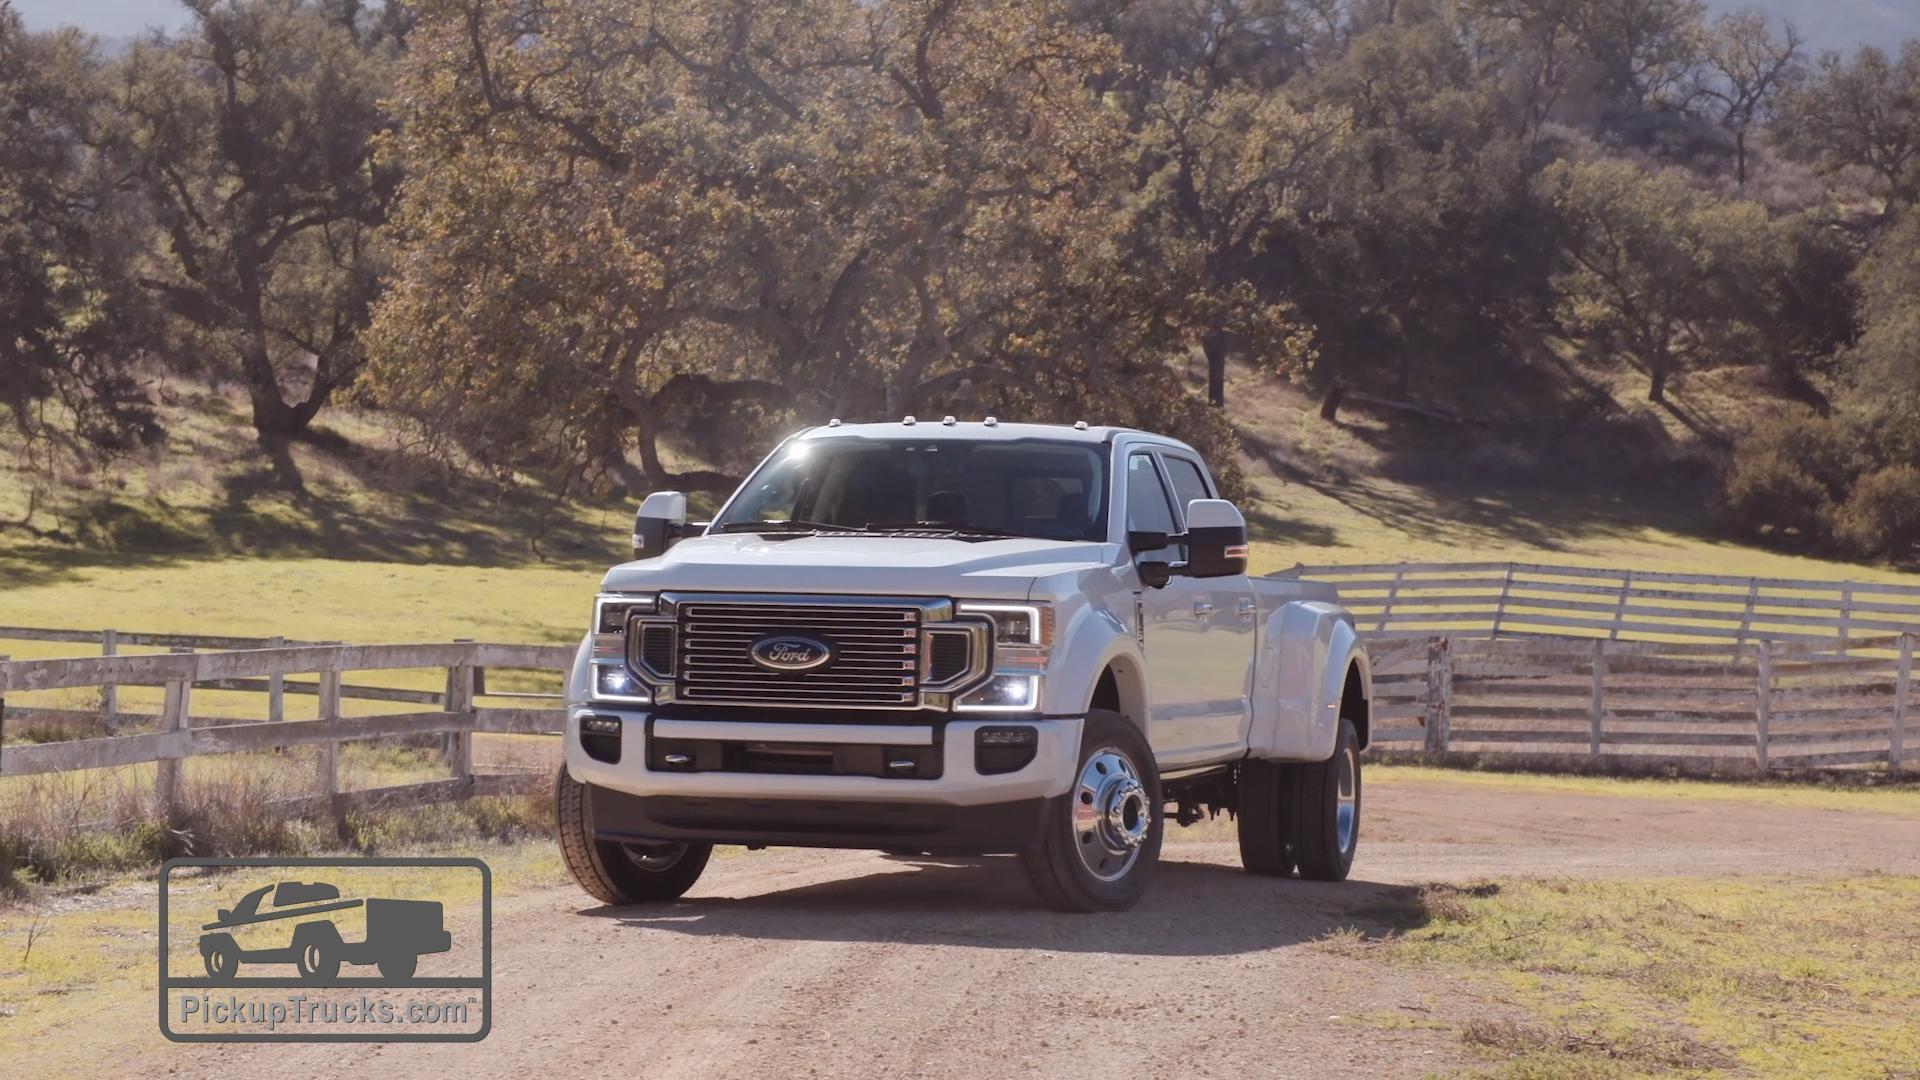 medium resolution of 2020 ford f 250 f 350 and f 450 video inside outside and under the hood pickuptrucks com news